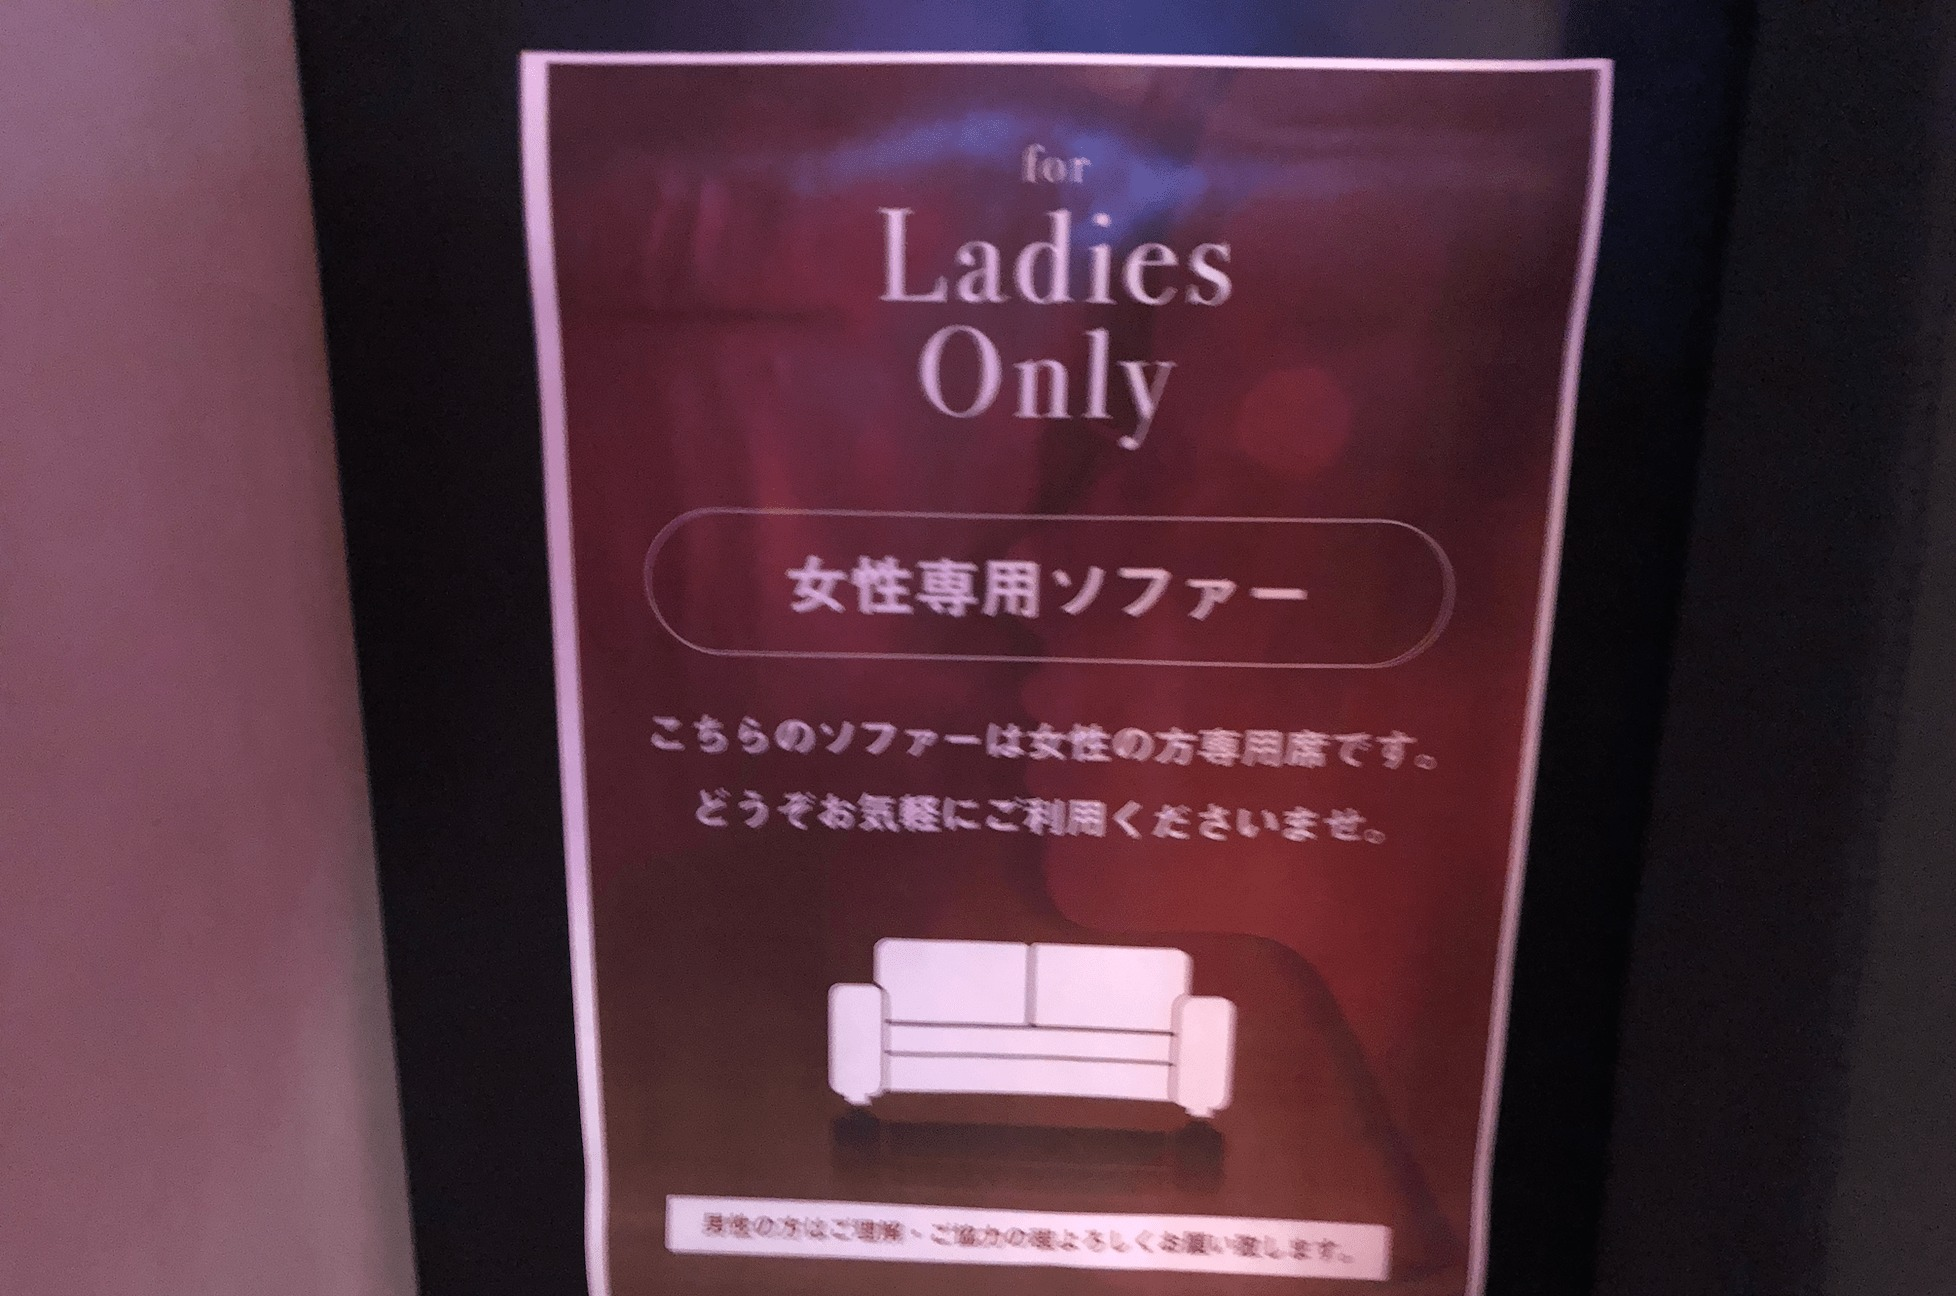 ladies only room